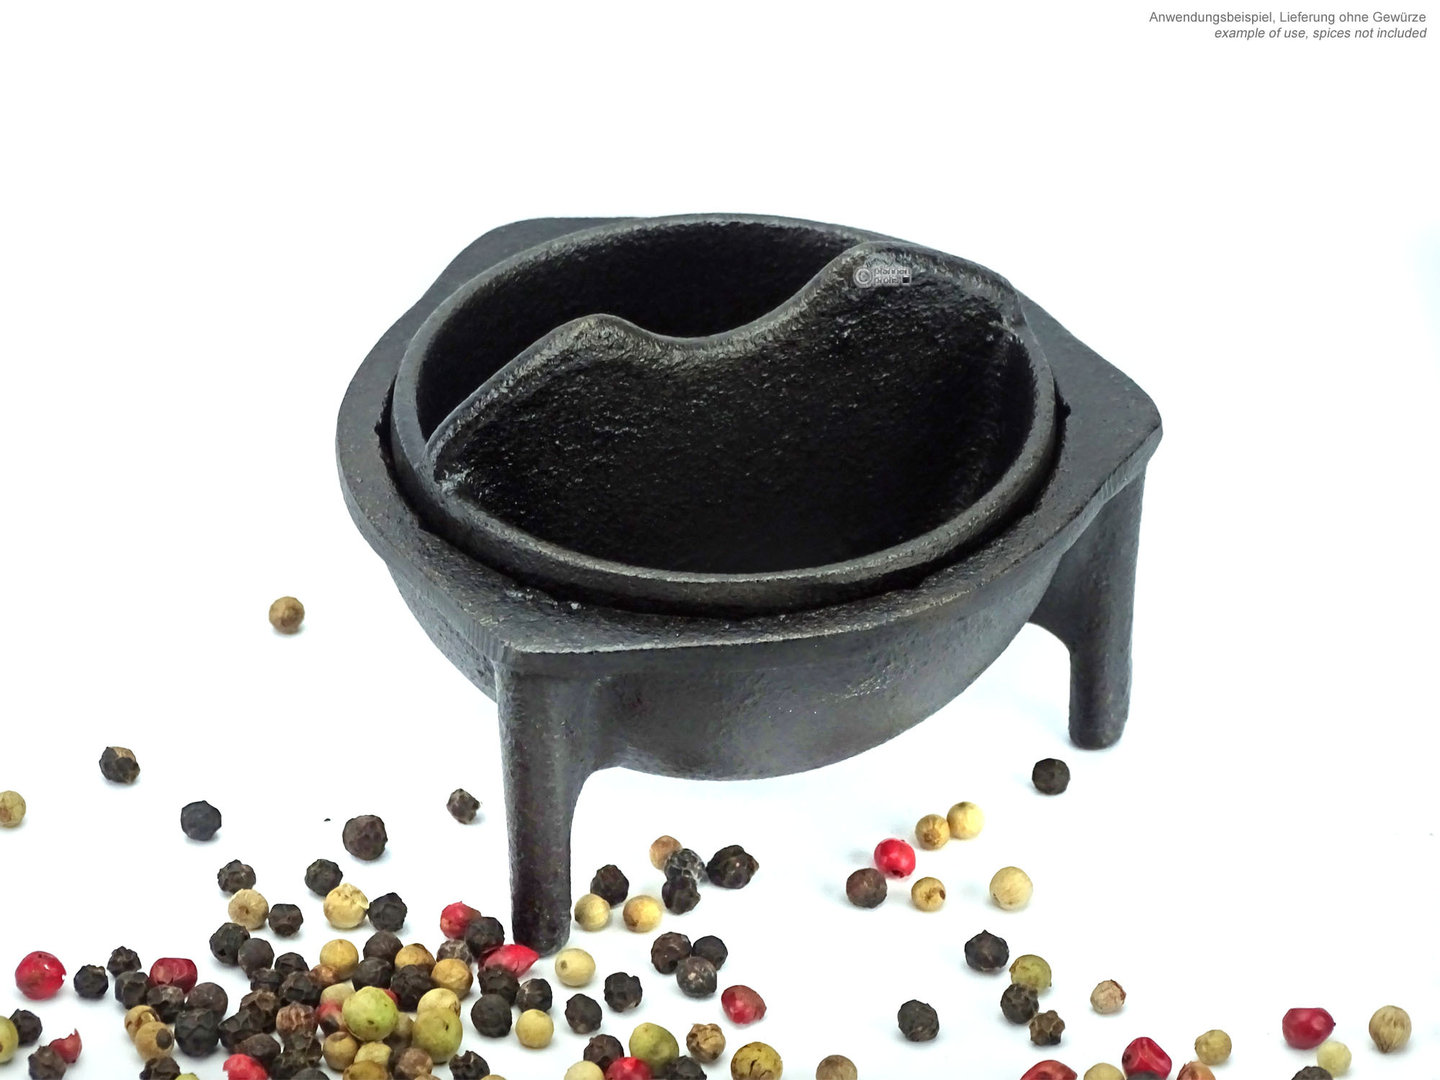 RONNEBY BRUK small cast iron mortar GYRO grinder